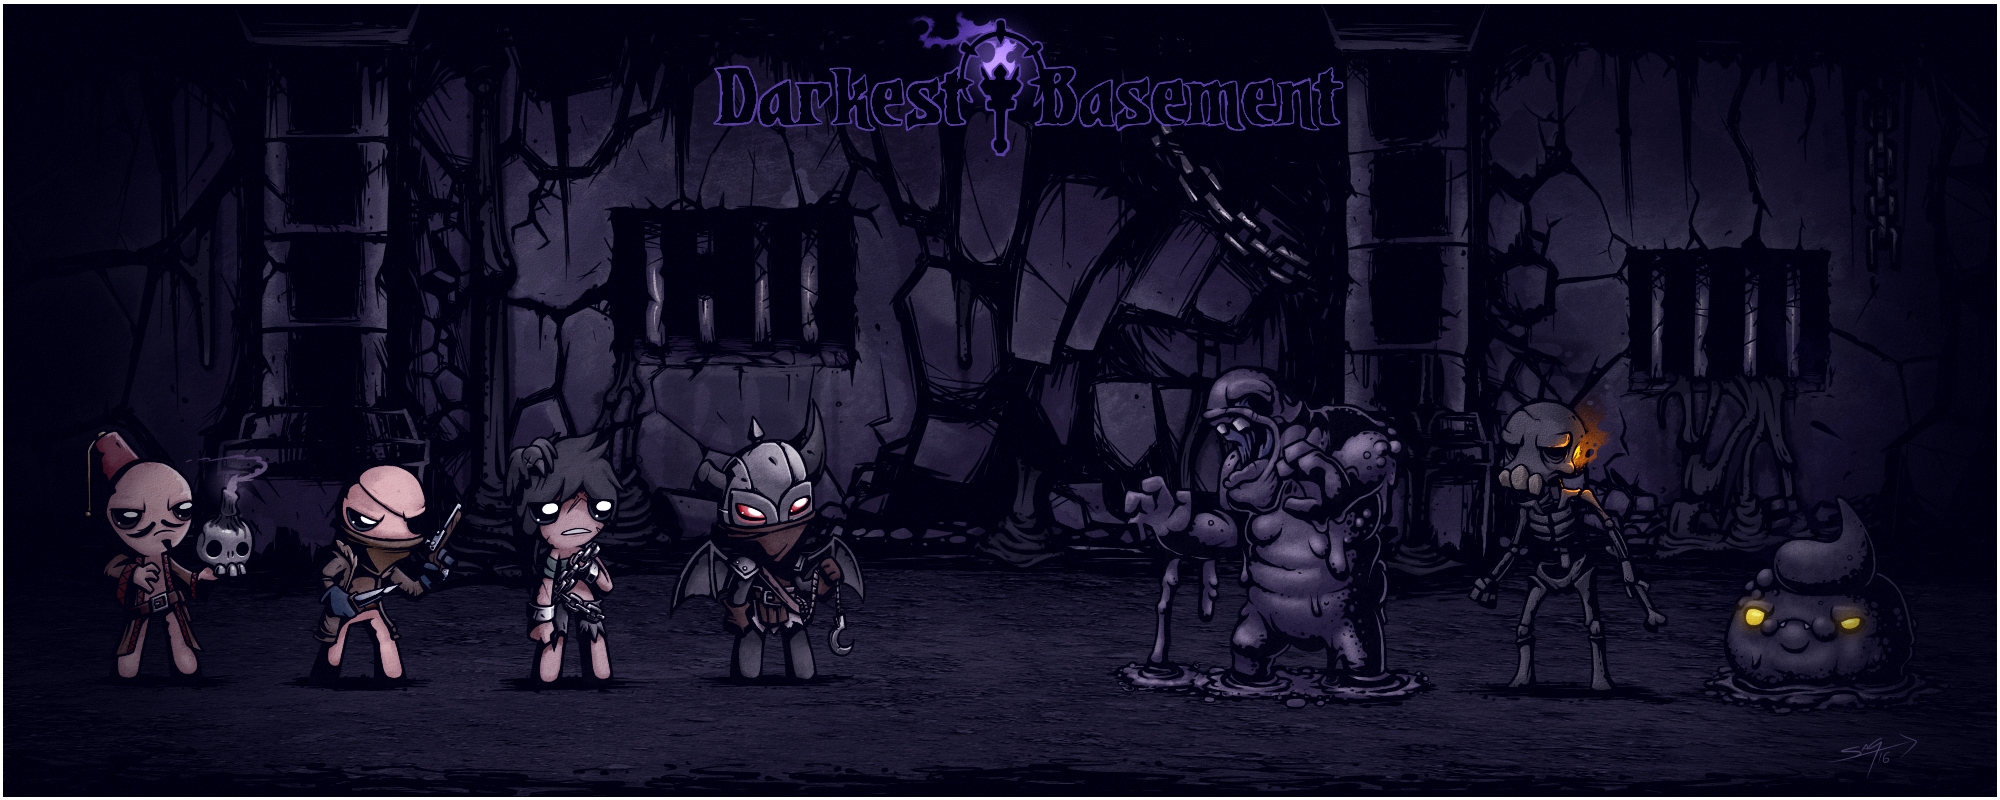 1455165088_darkest basement.png